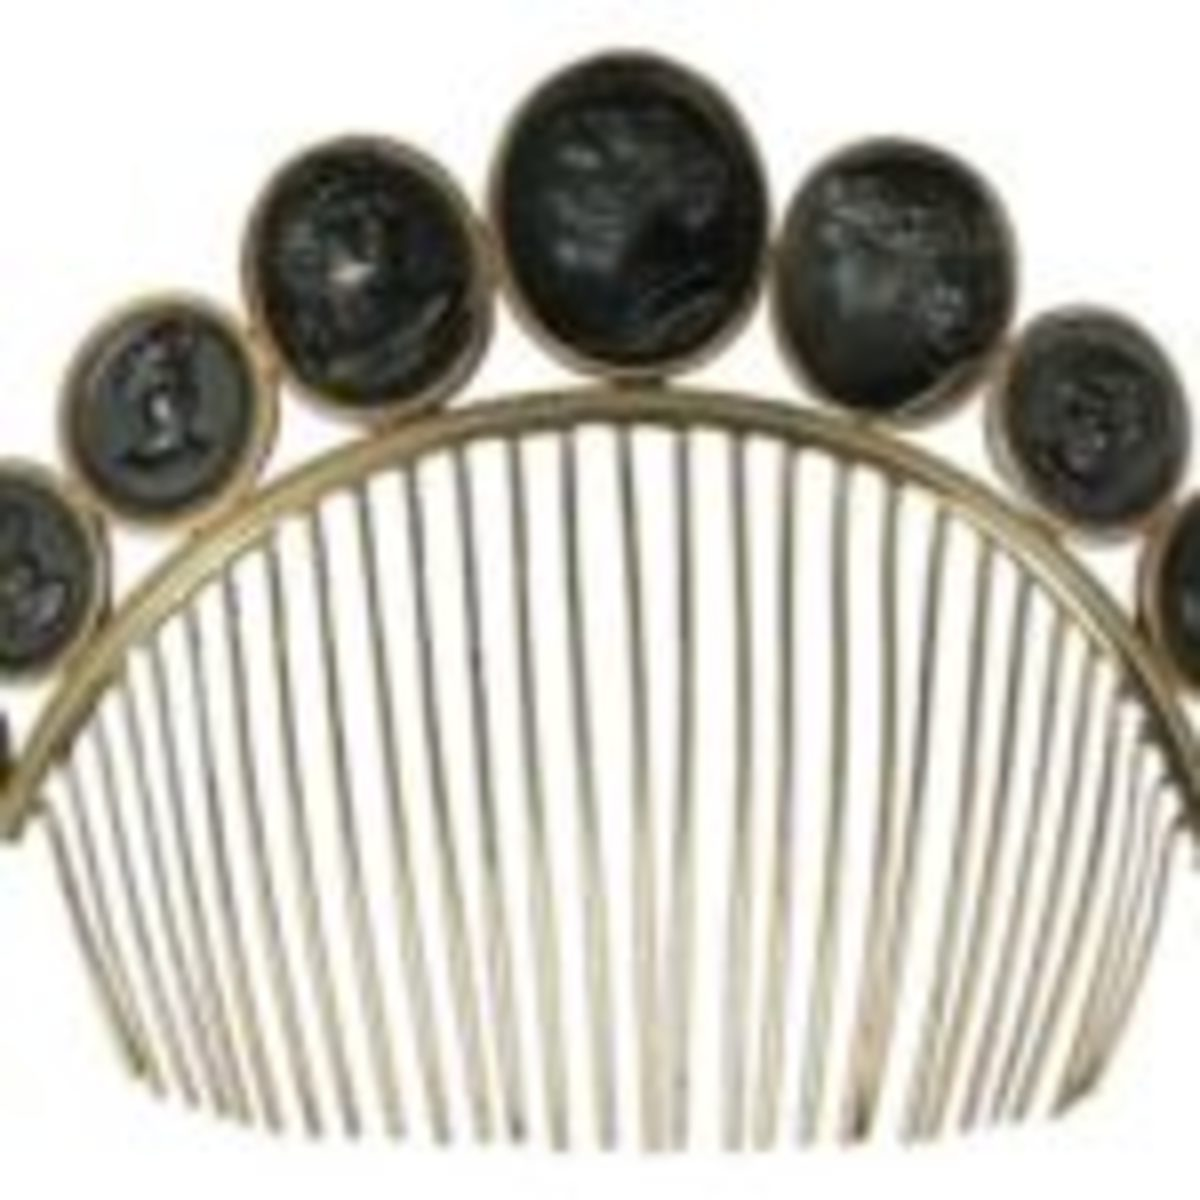 French gold and steel cameo hair comb, circa 1830, featuring carved cameos, sold for $572. Courtesy of Dreweatts Bristol Auction Rooms, Bristol, UK.